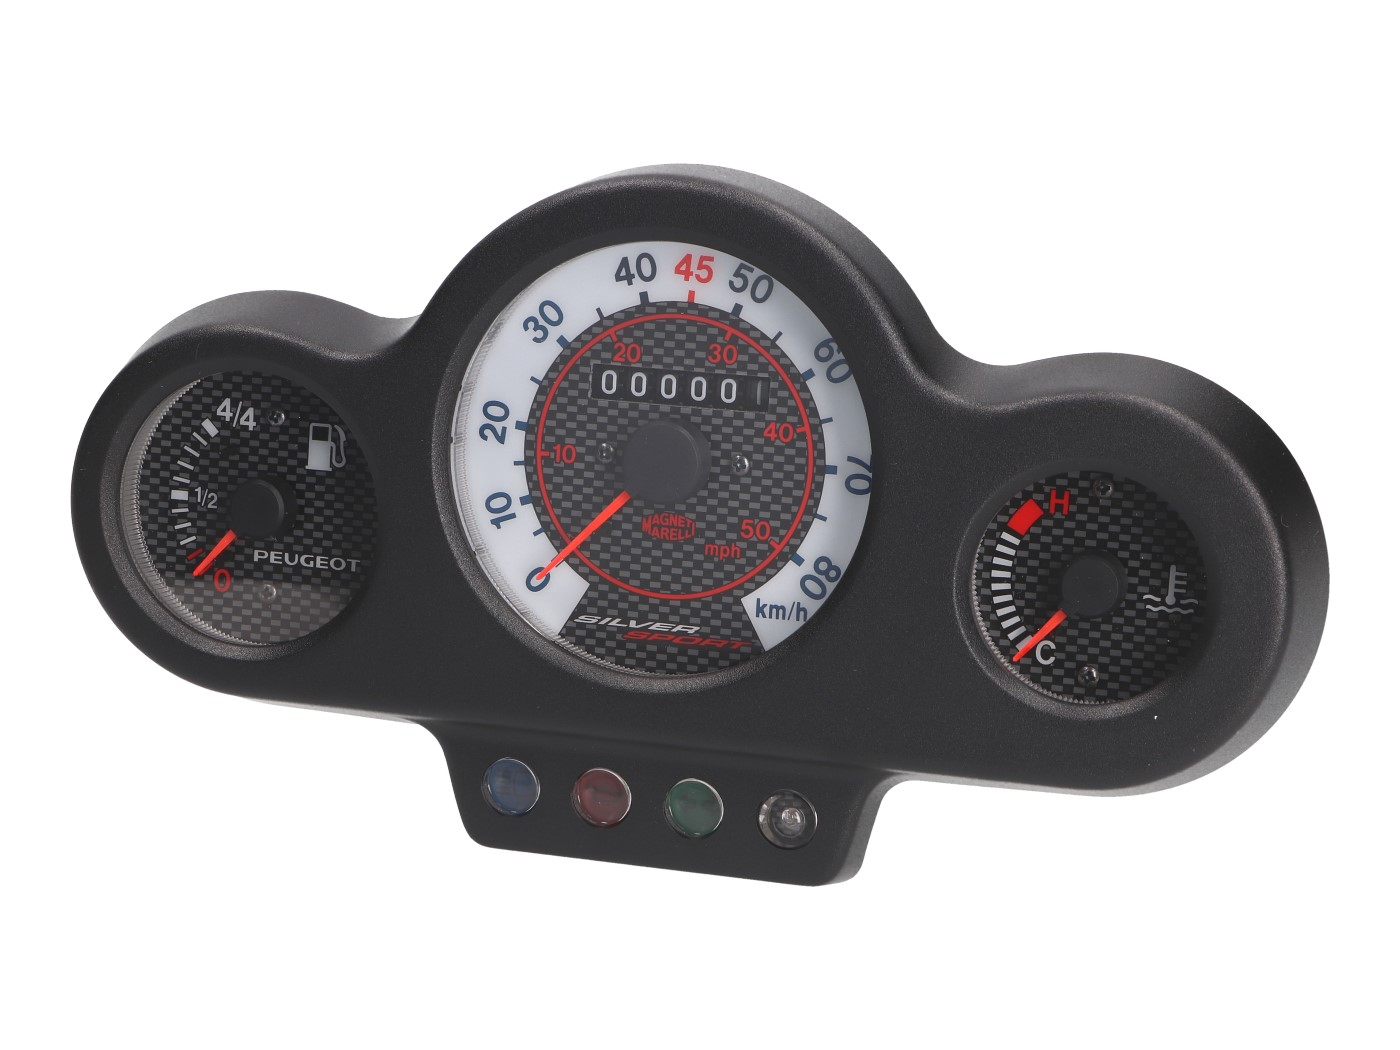 Speedfight 2 Auspuff Tachometer Original Peugeot Speedfight 2 Lc Silversport